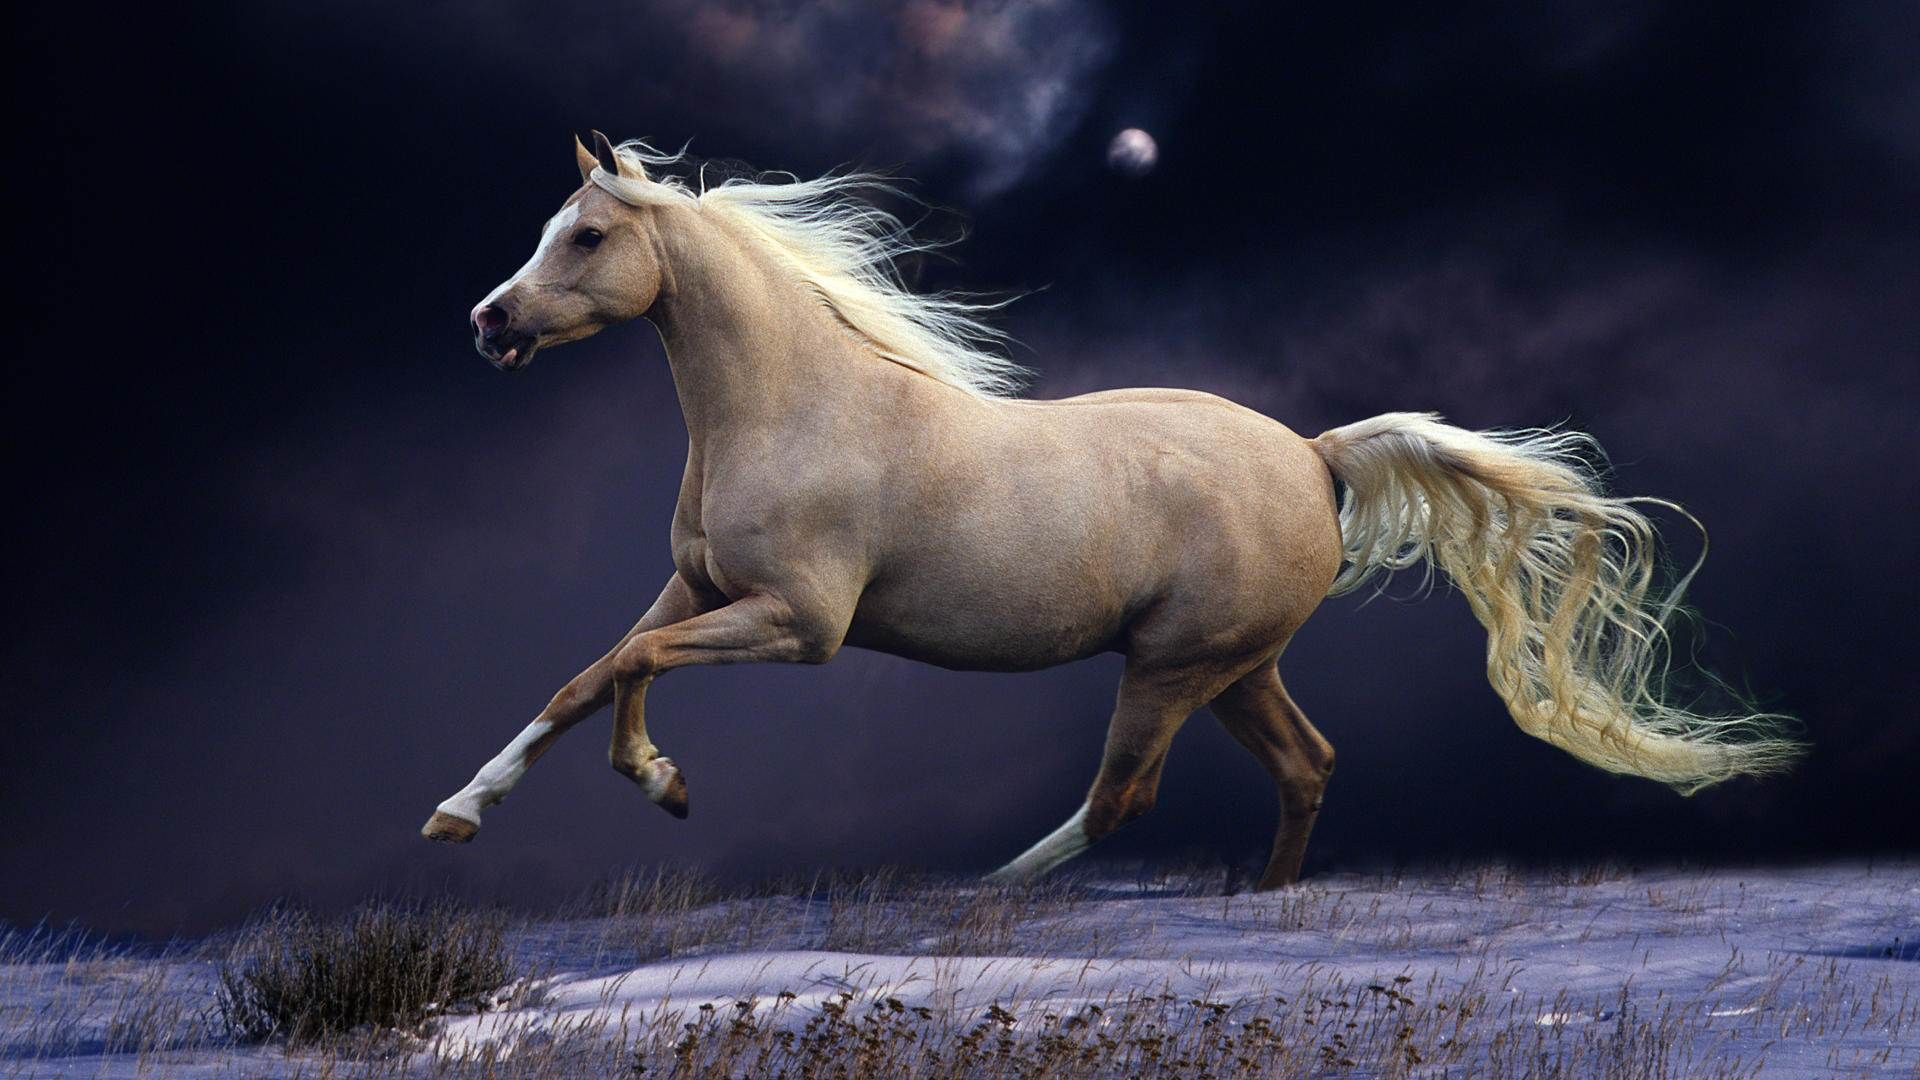 Must see Wallpaper Horse Abstract - 2035508b46d8ecc47214c2b85a343b36  Collection_197766.jpg